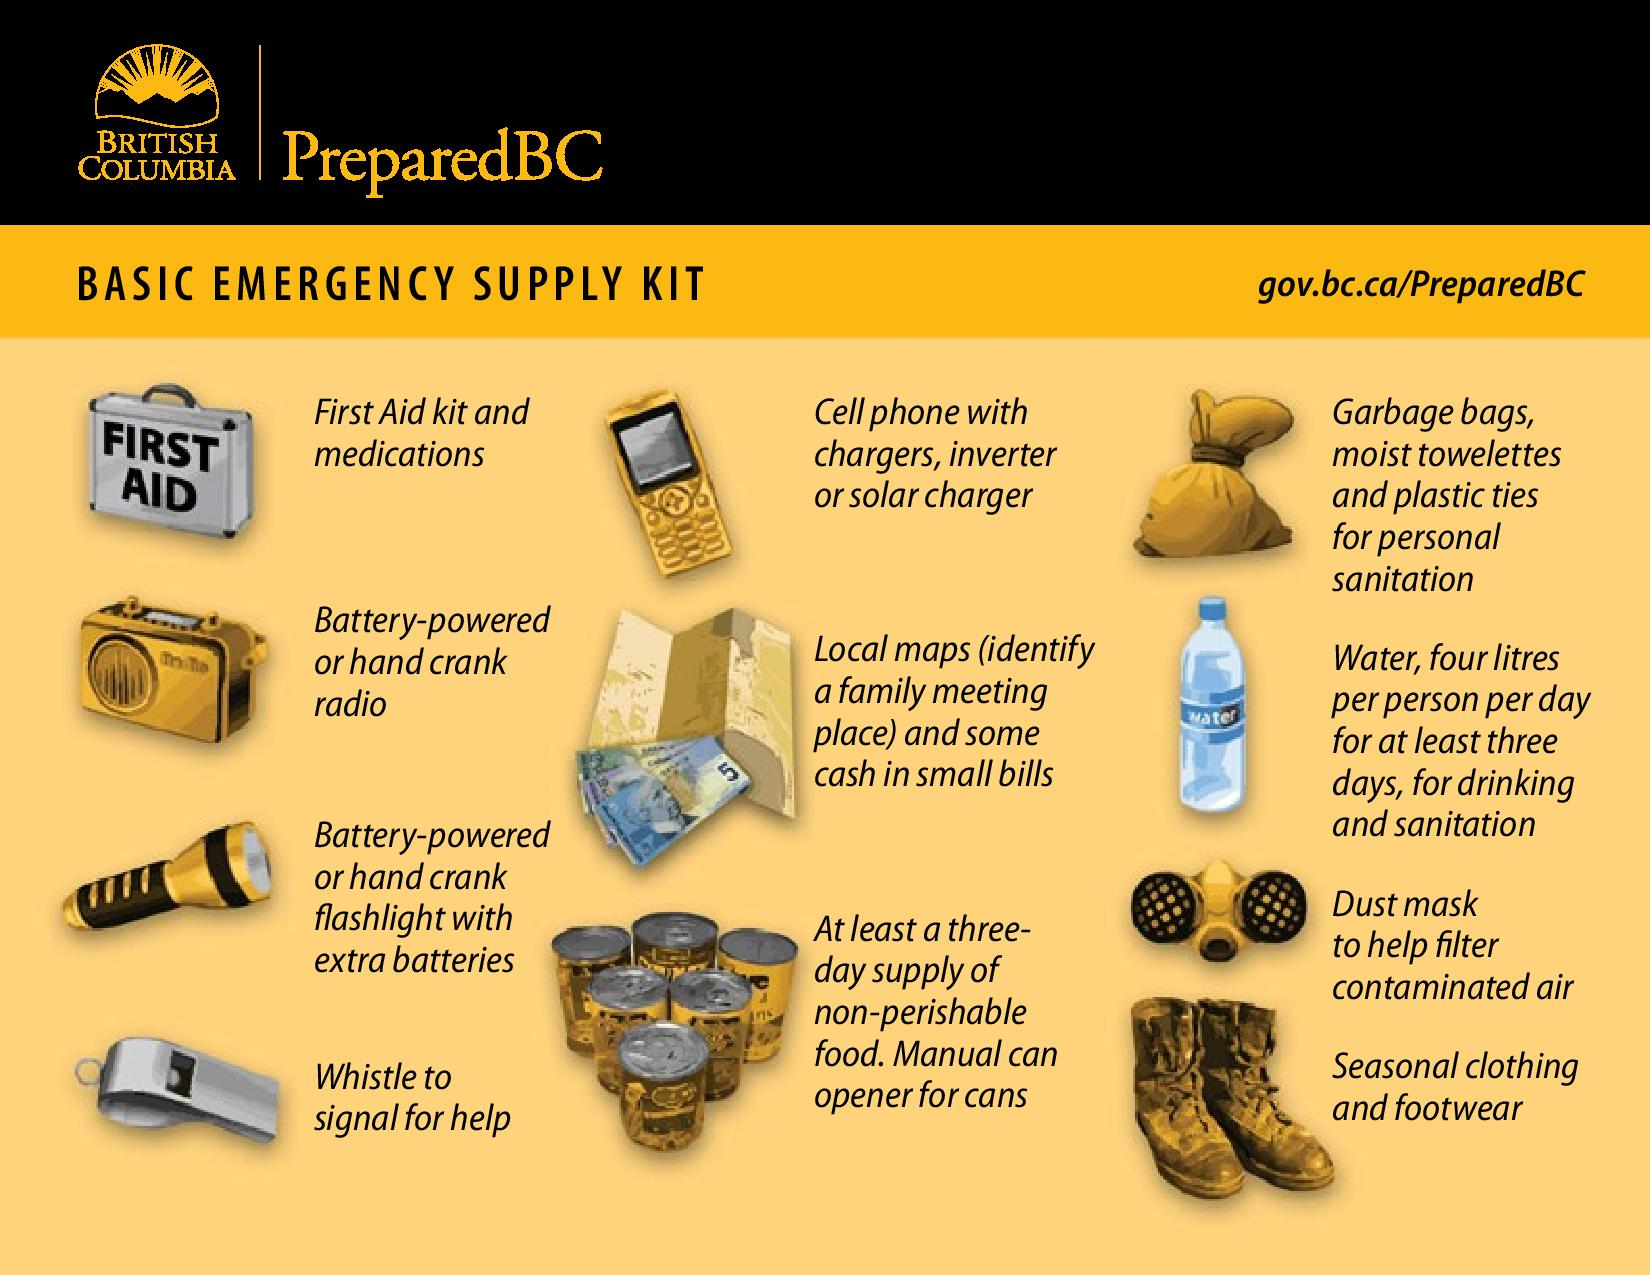 What Should You Include In An Emergency Kit In Case Of A Disaster